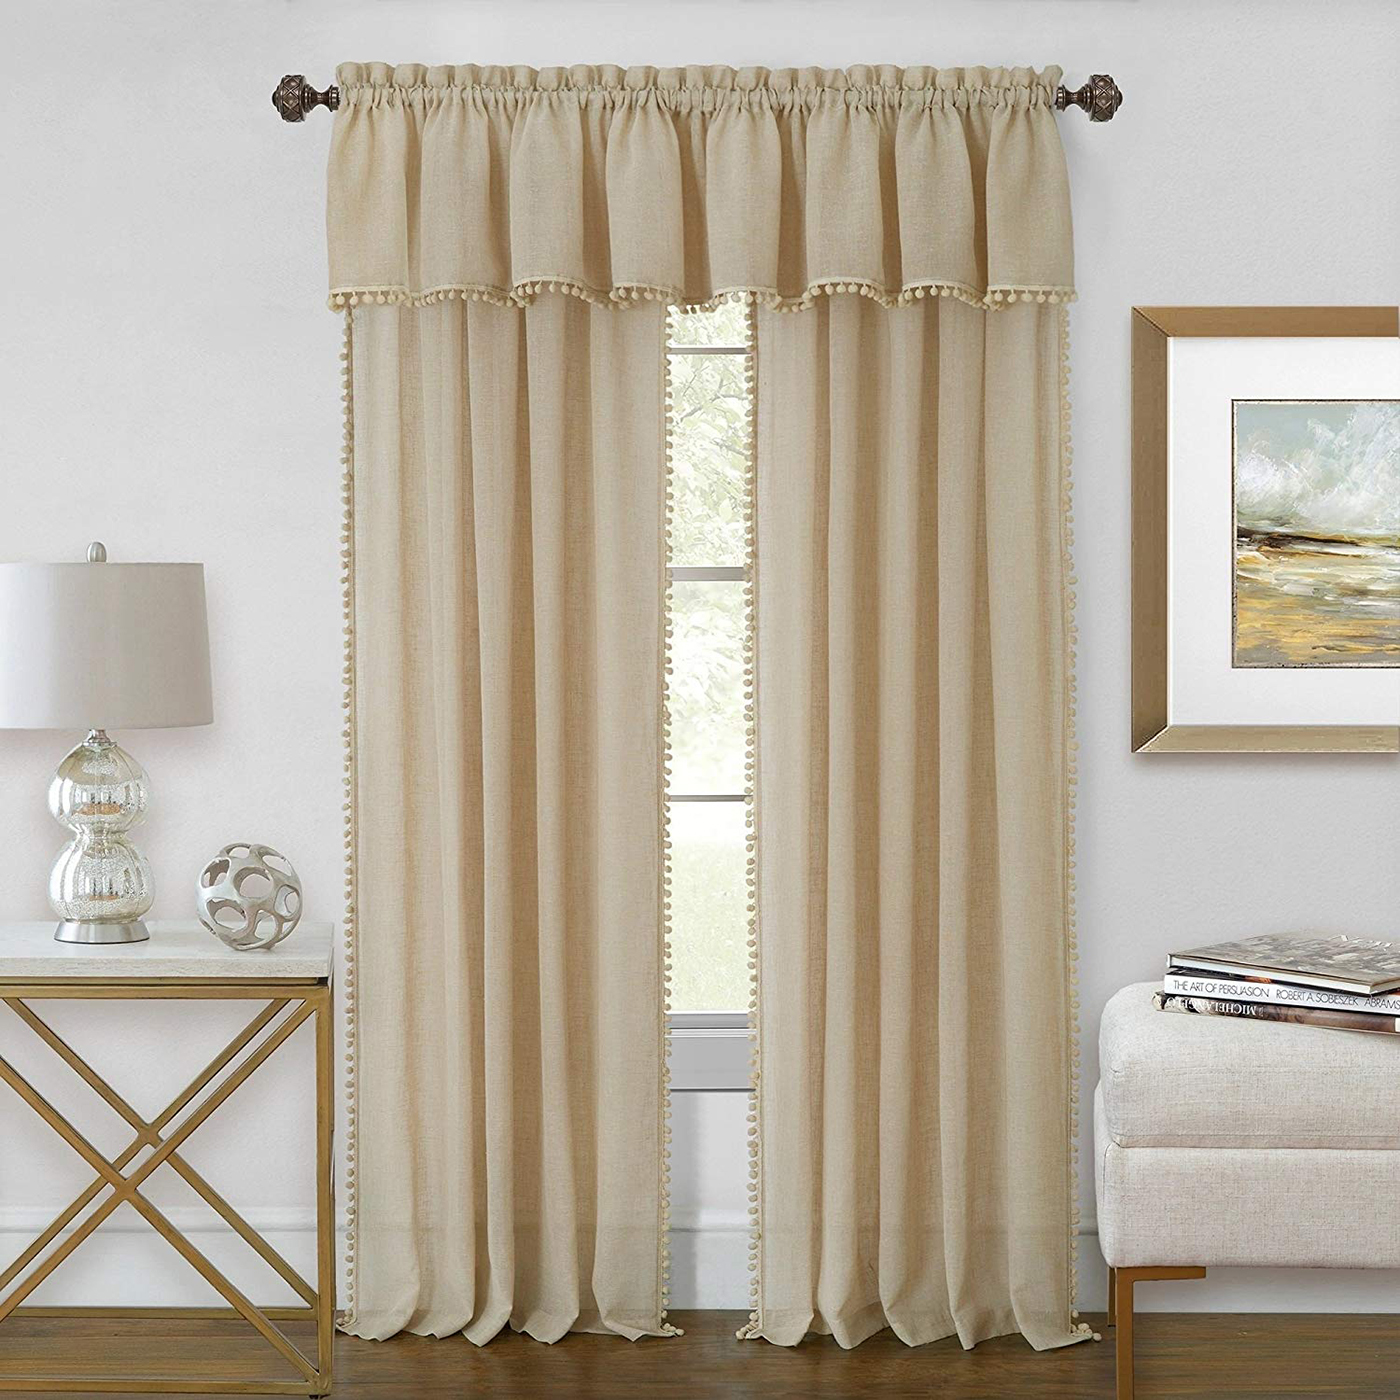 Curtain-Rod-Decorative-Telescopic-Cafe-Window-Drapery-Rods-Set-w-Modern-Finials thumbnail 25